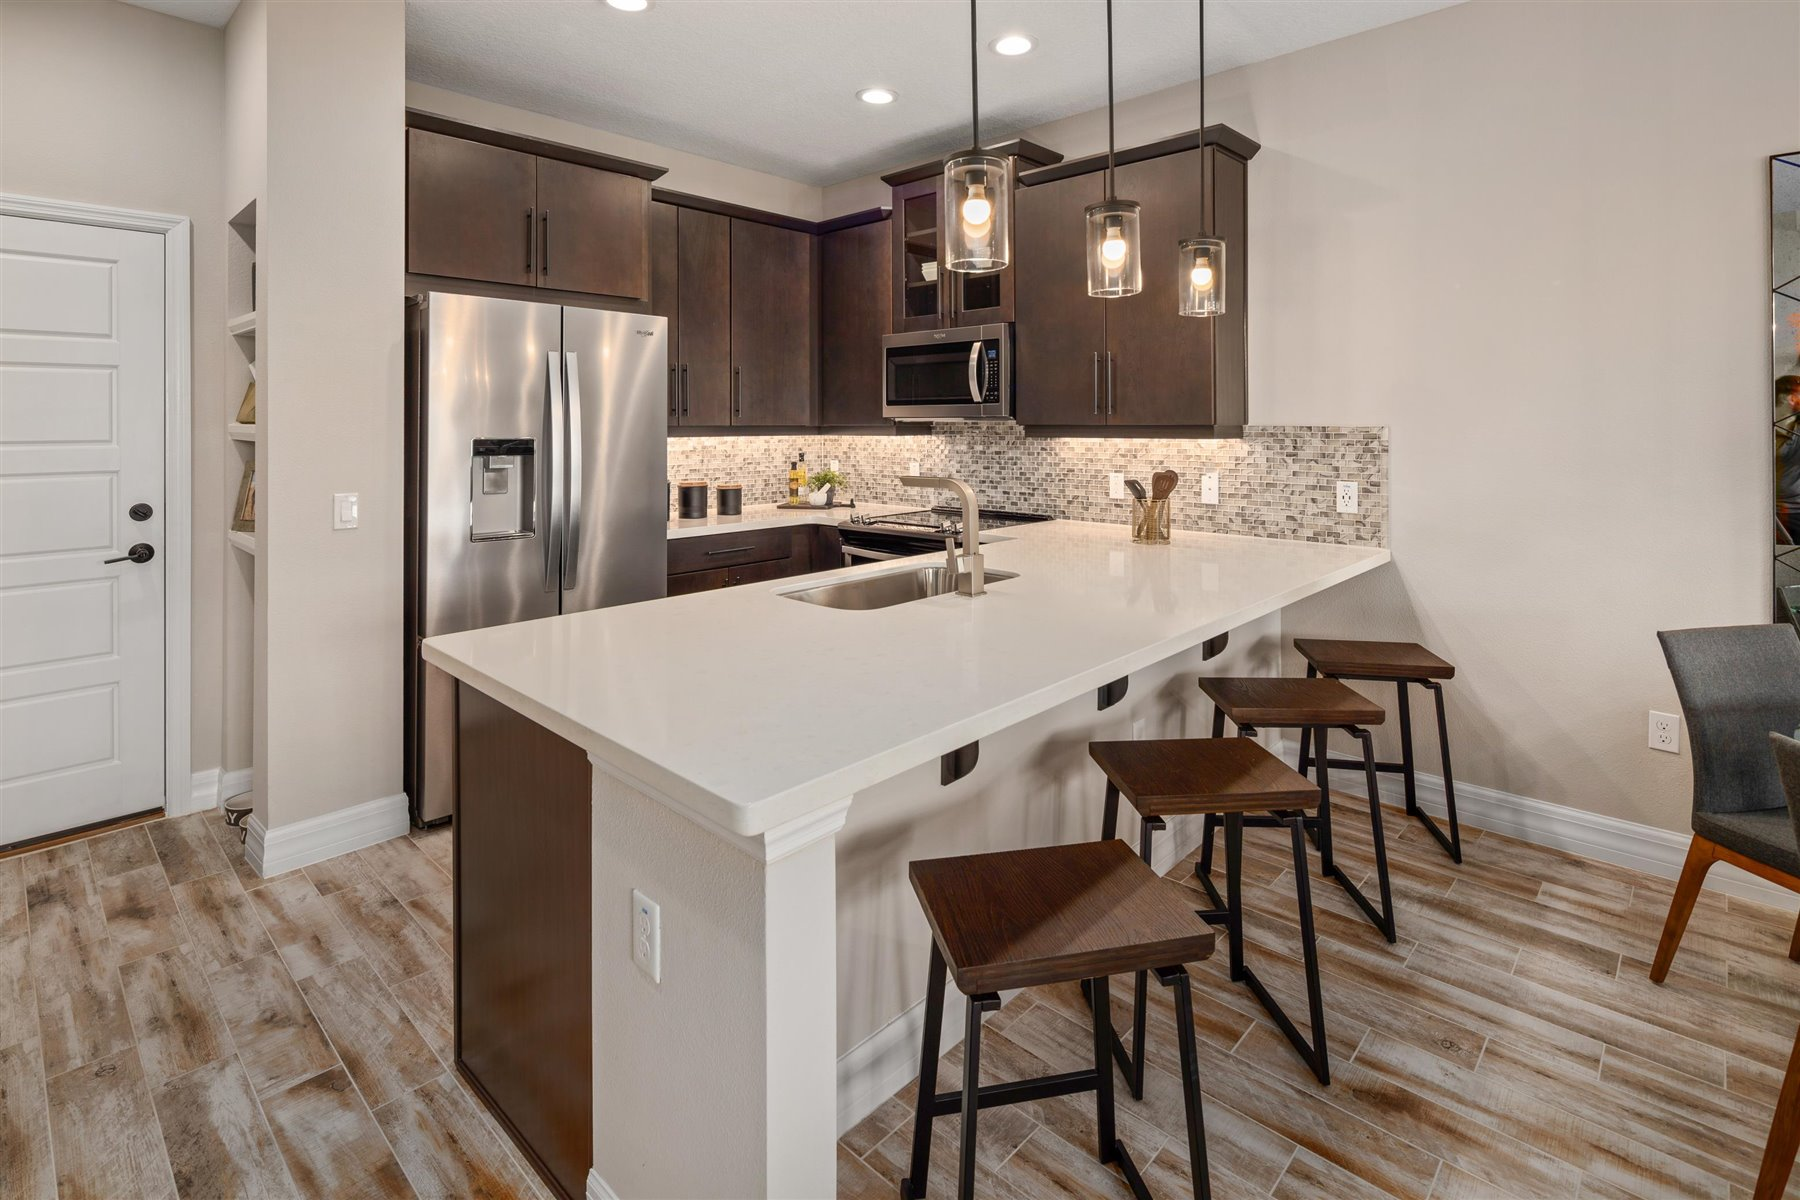 Francesca III Plan Kitchen at Randal Walk in Orlando Florida by Mattamy Homes